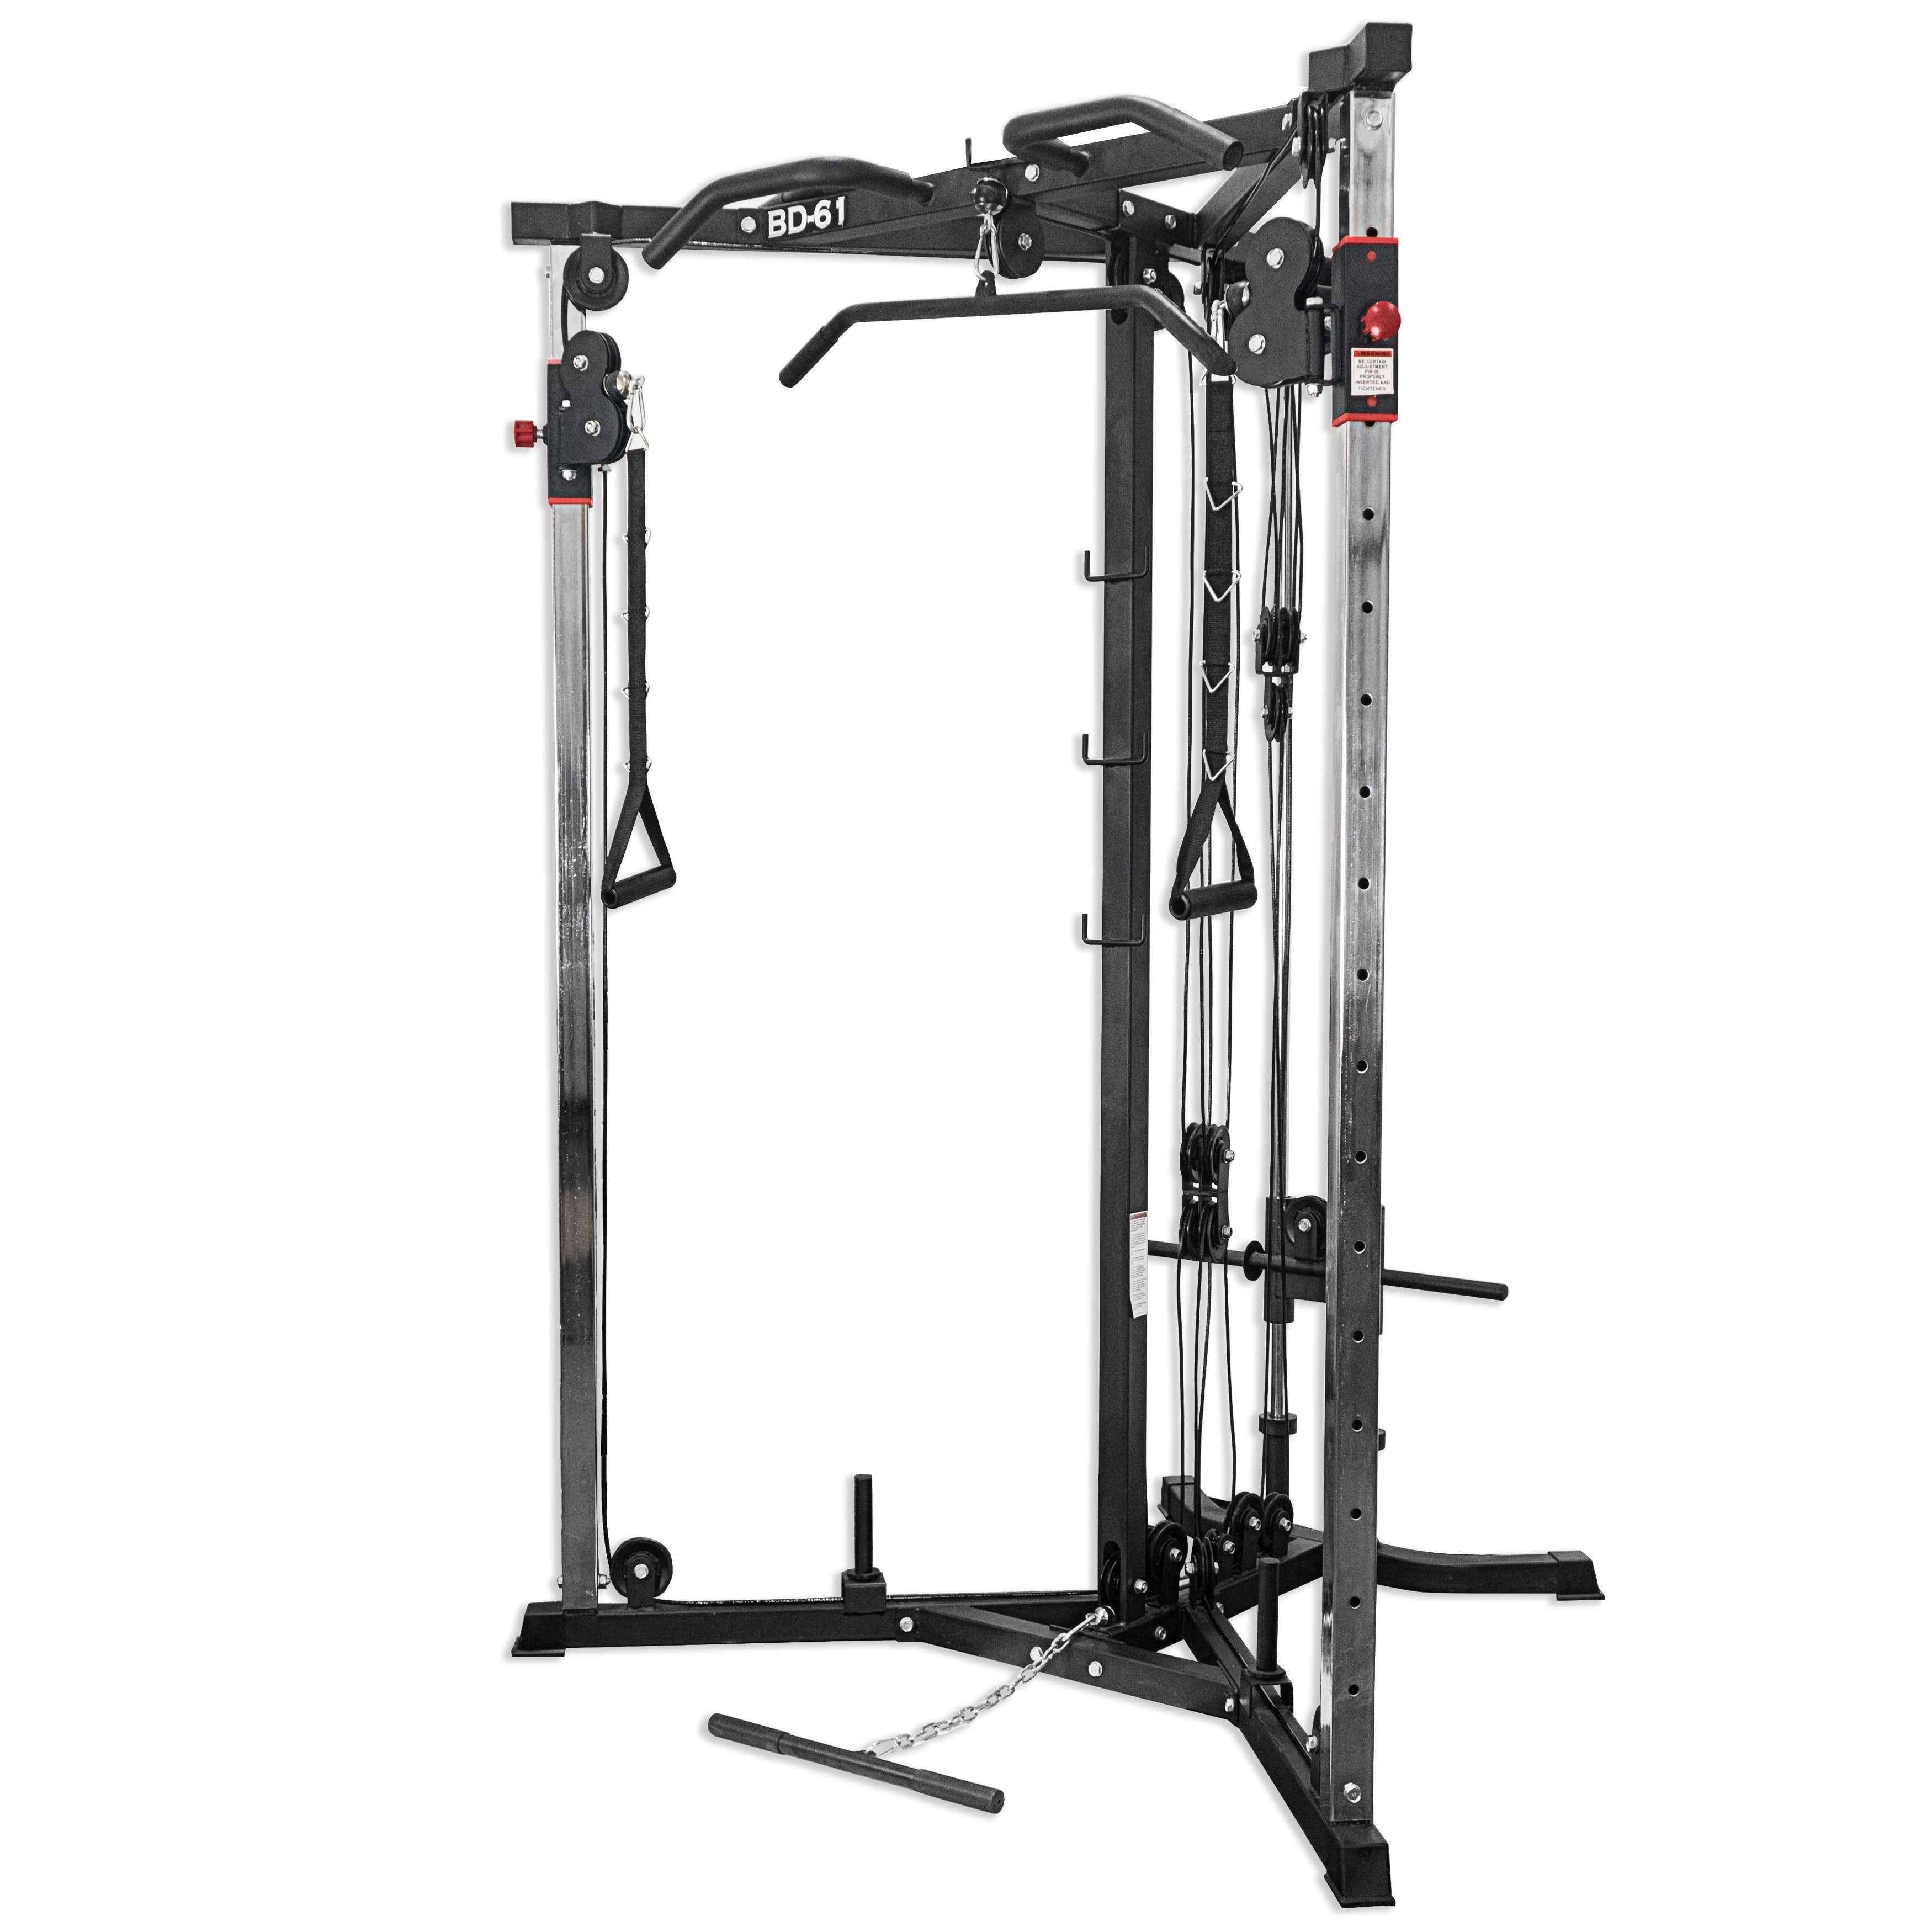 Valor Fitness BD-61 Cable Crossover Station, Silver steel